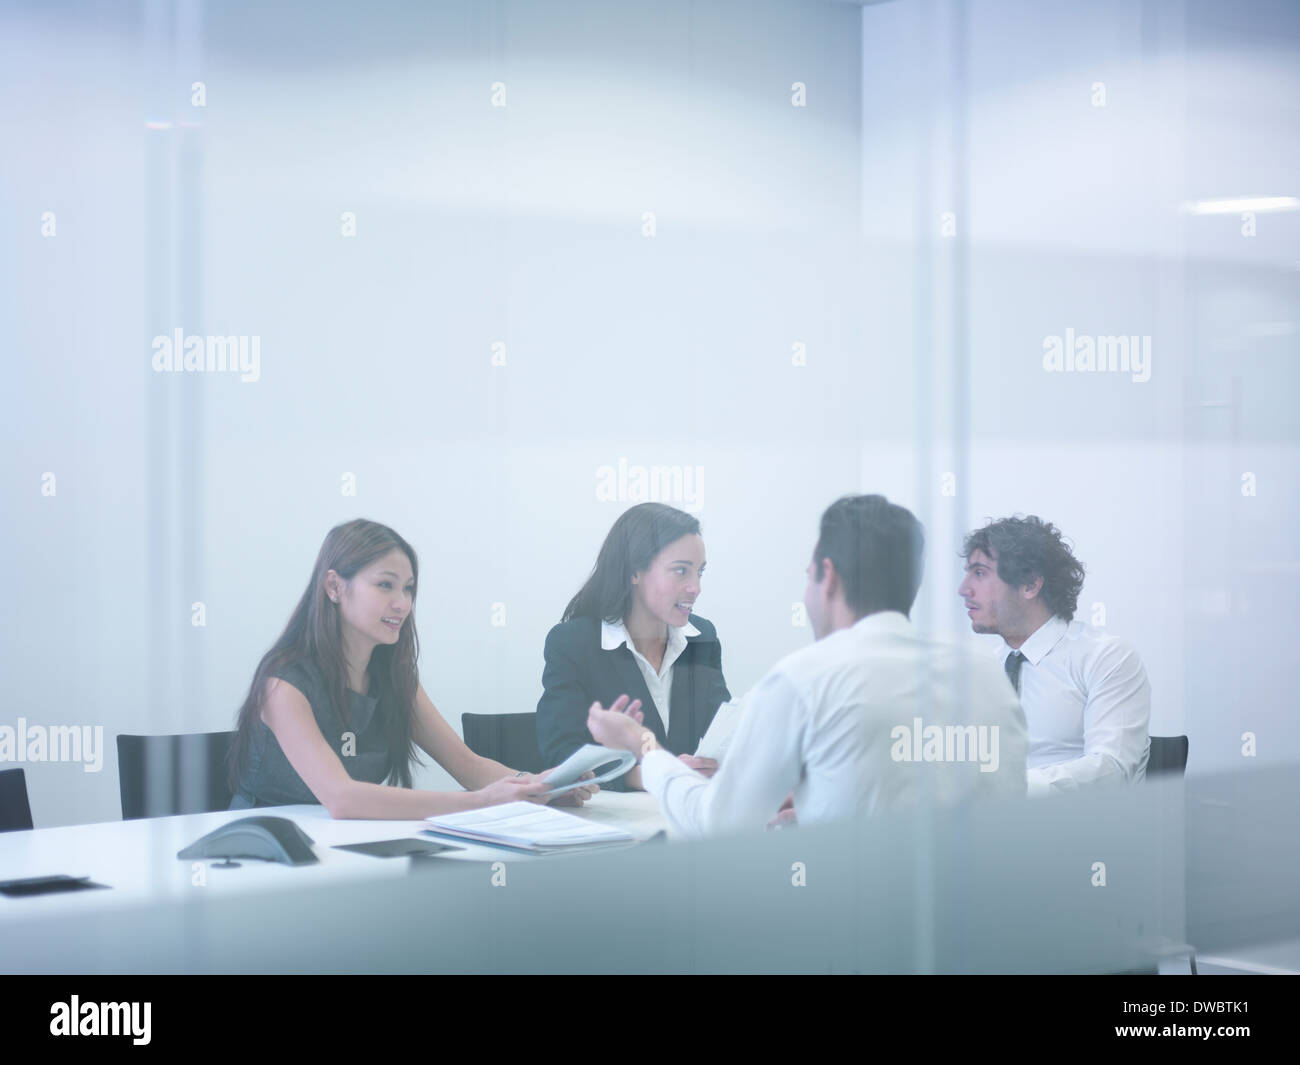 View through glass wall of business colleagues in meeting - Stock Image